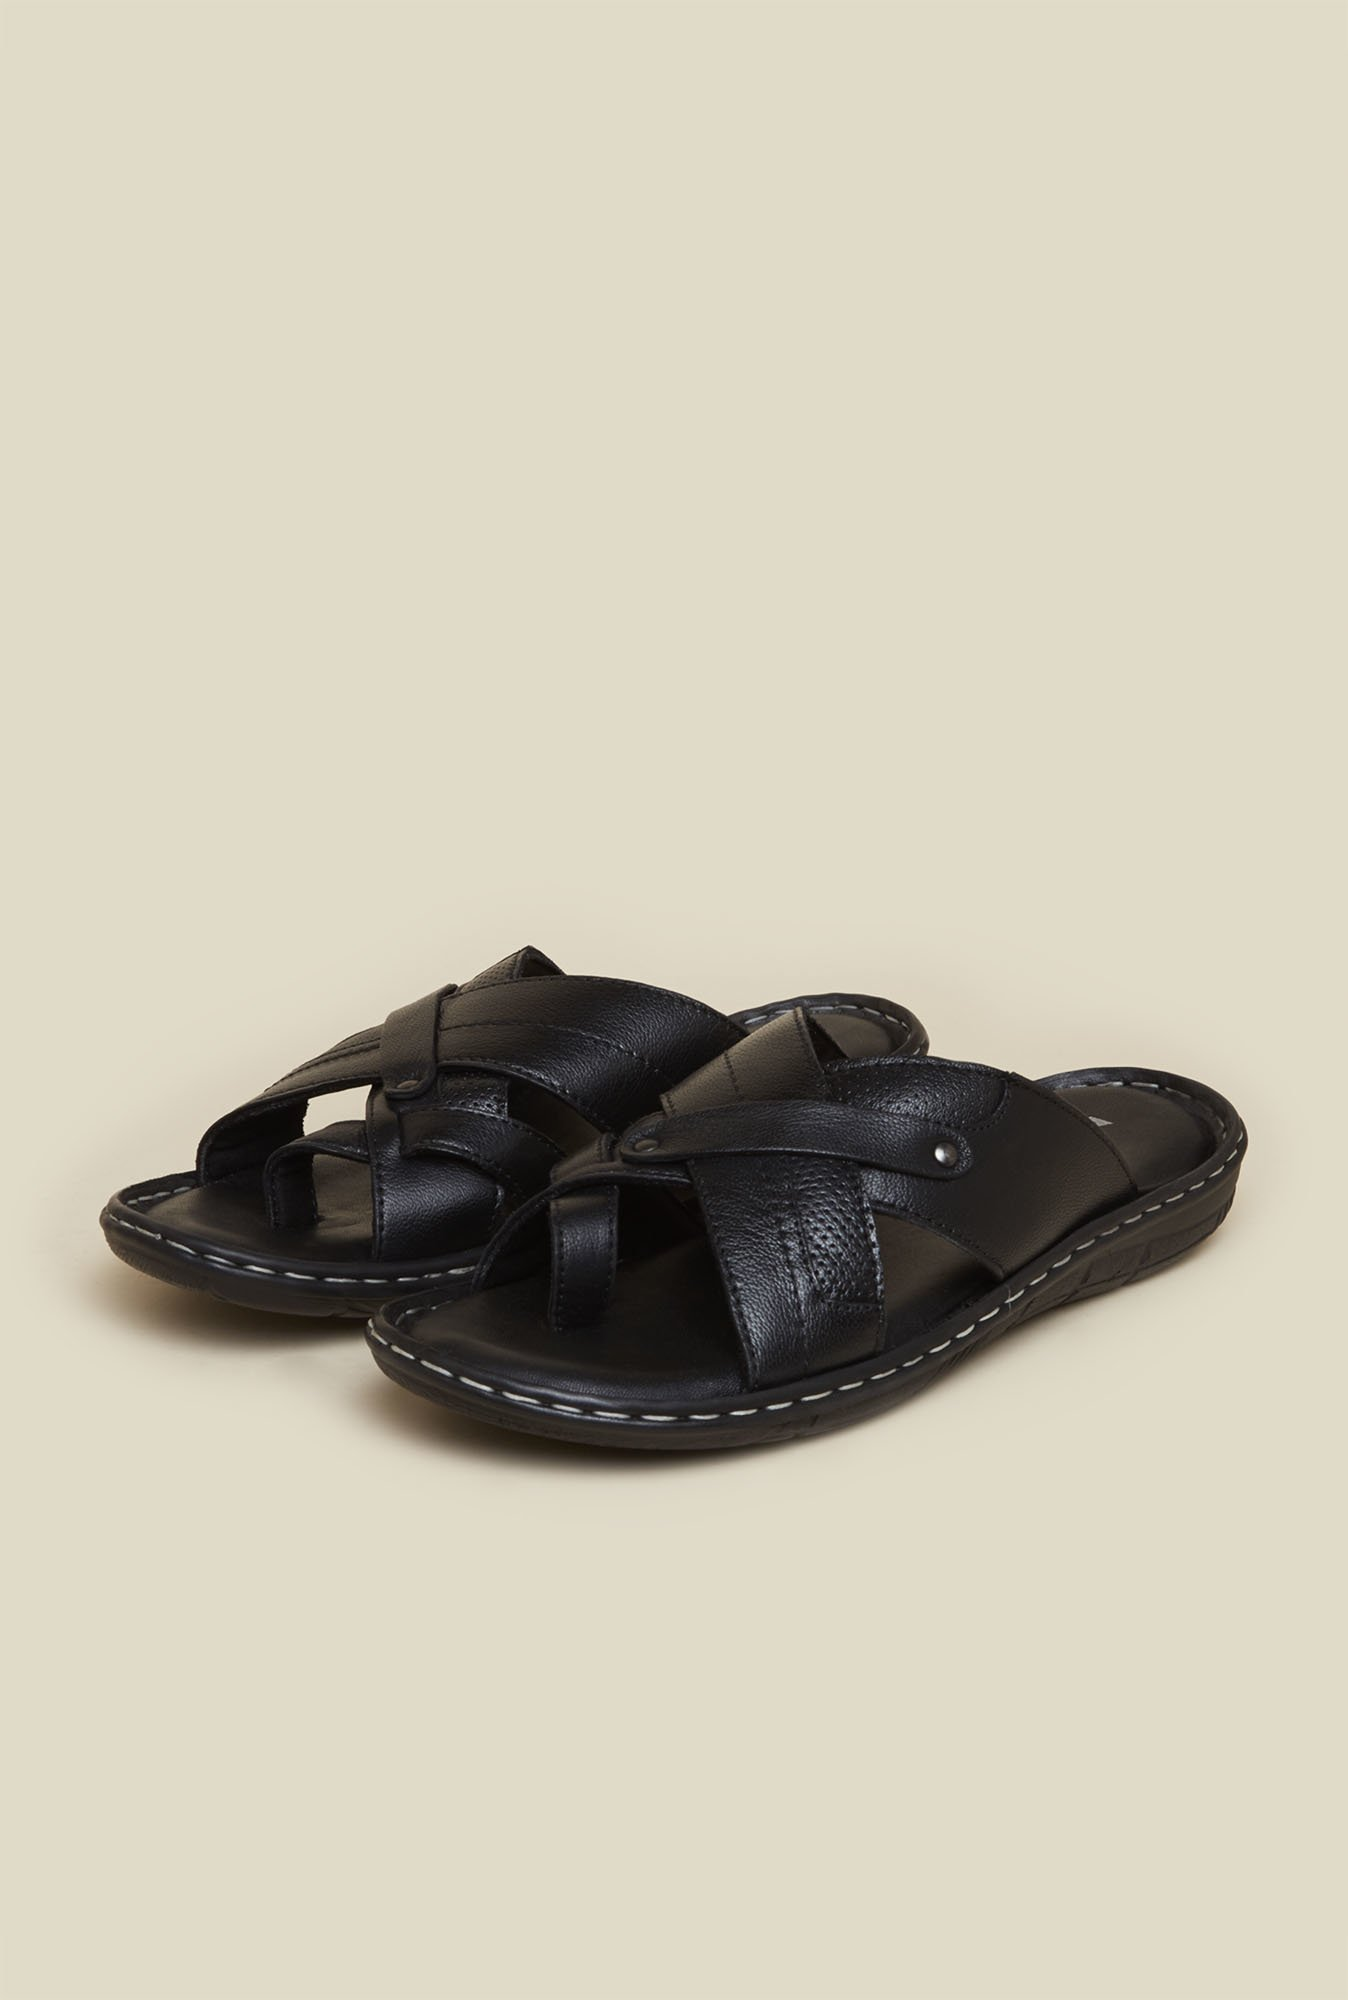 Mochi Black Cross Strap Leather Sandals